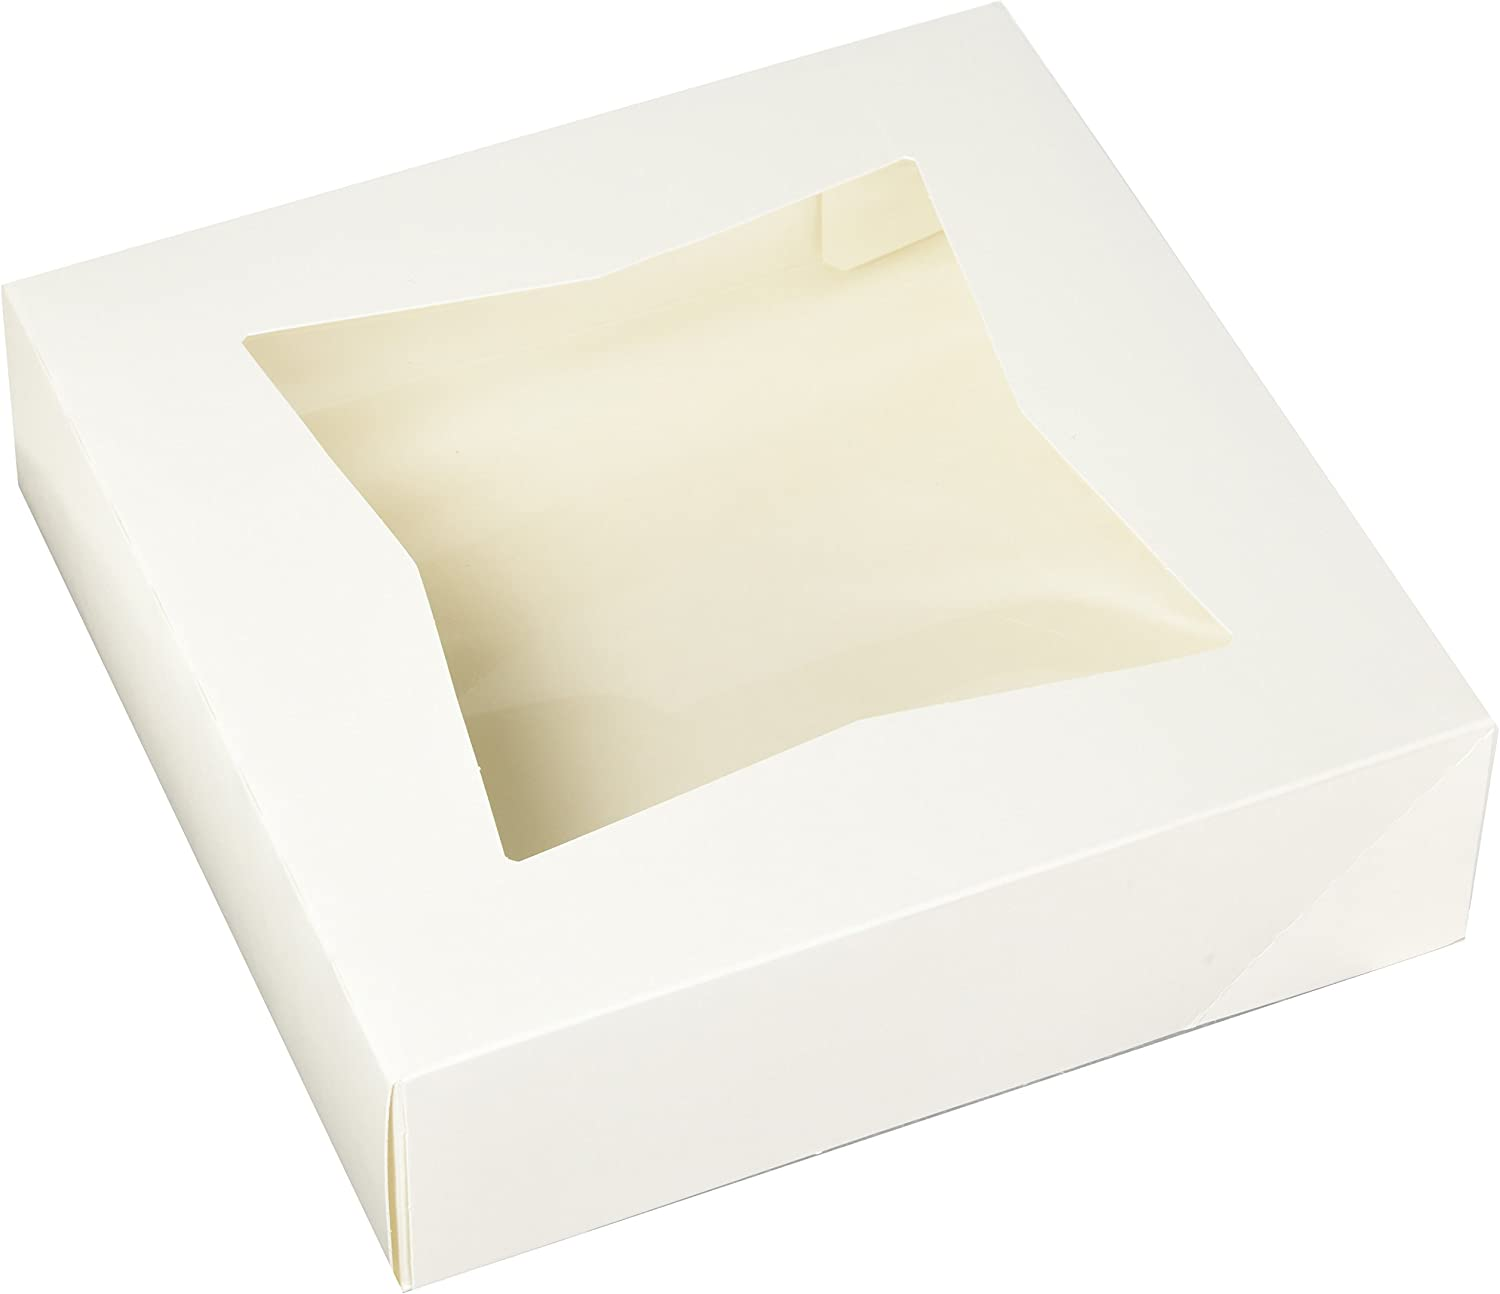 Chefible Extra Thick Durable Pie Box With Window, 9x9x2.5 Inches, Perfect for Pies and Pastries, Set of 12